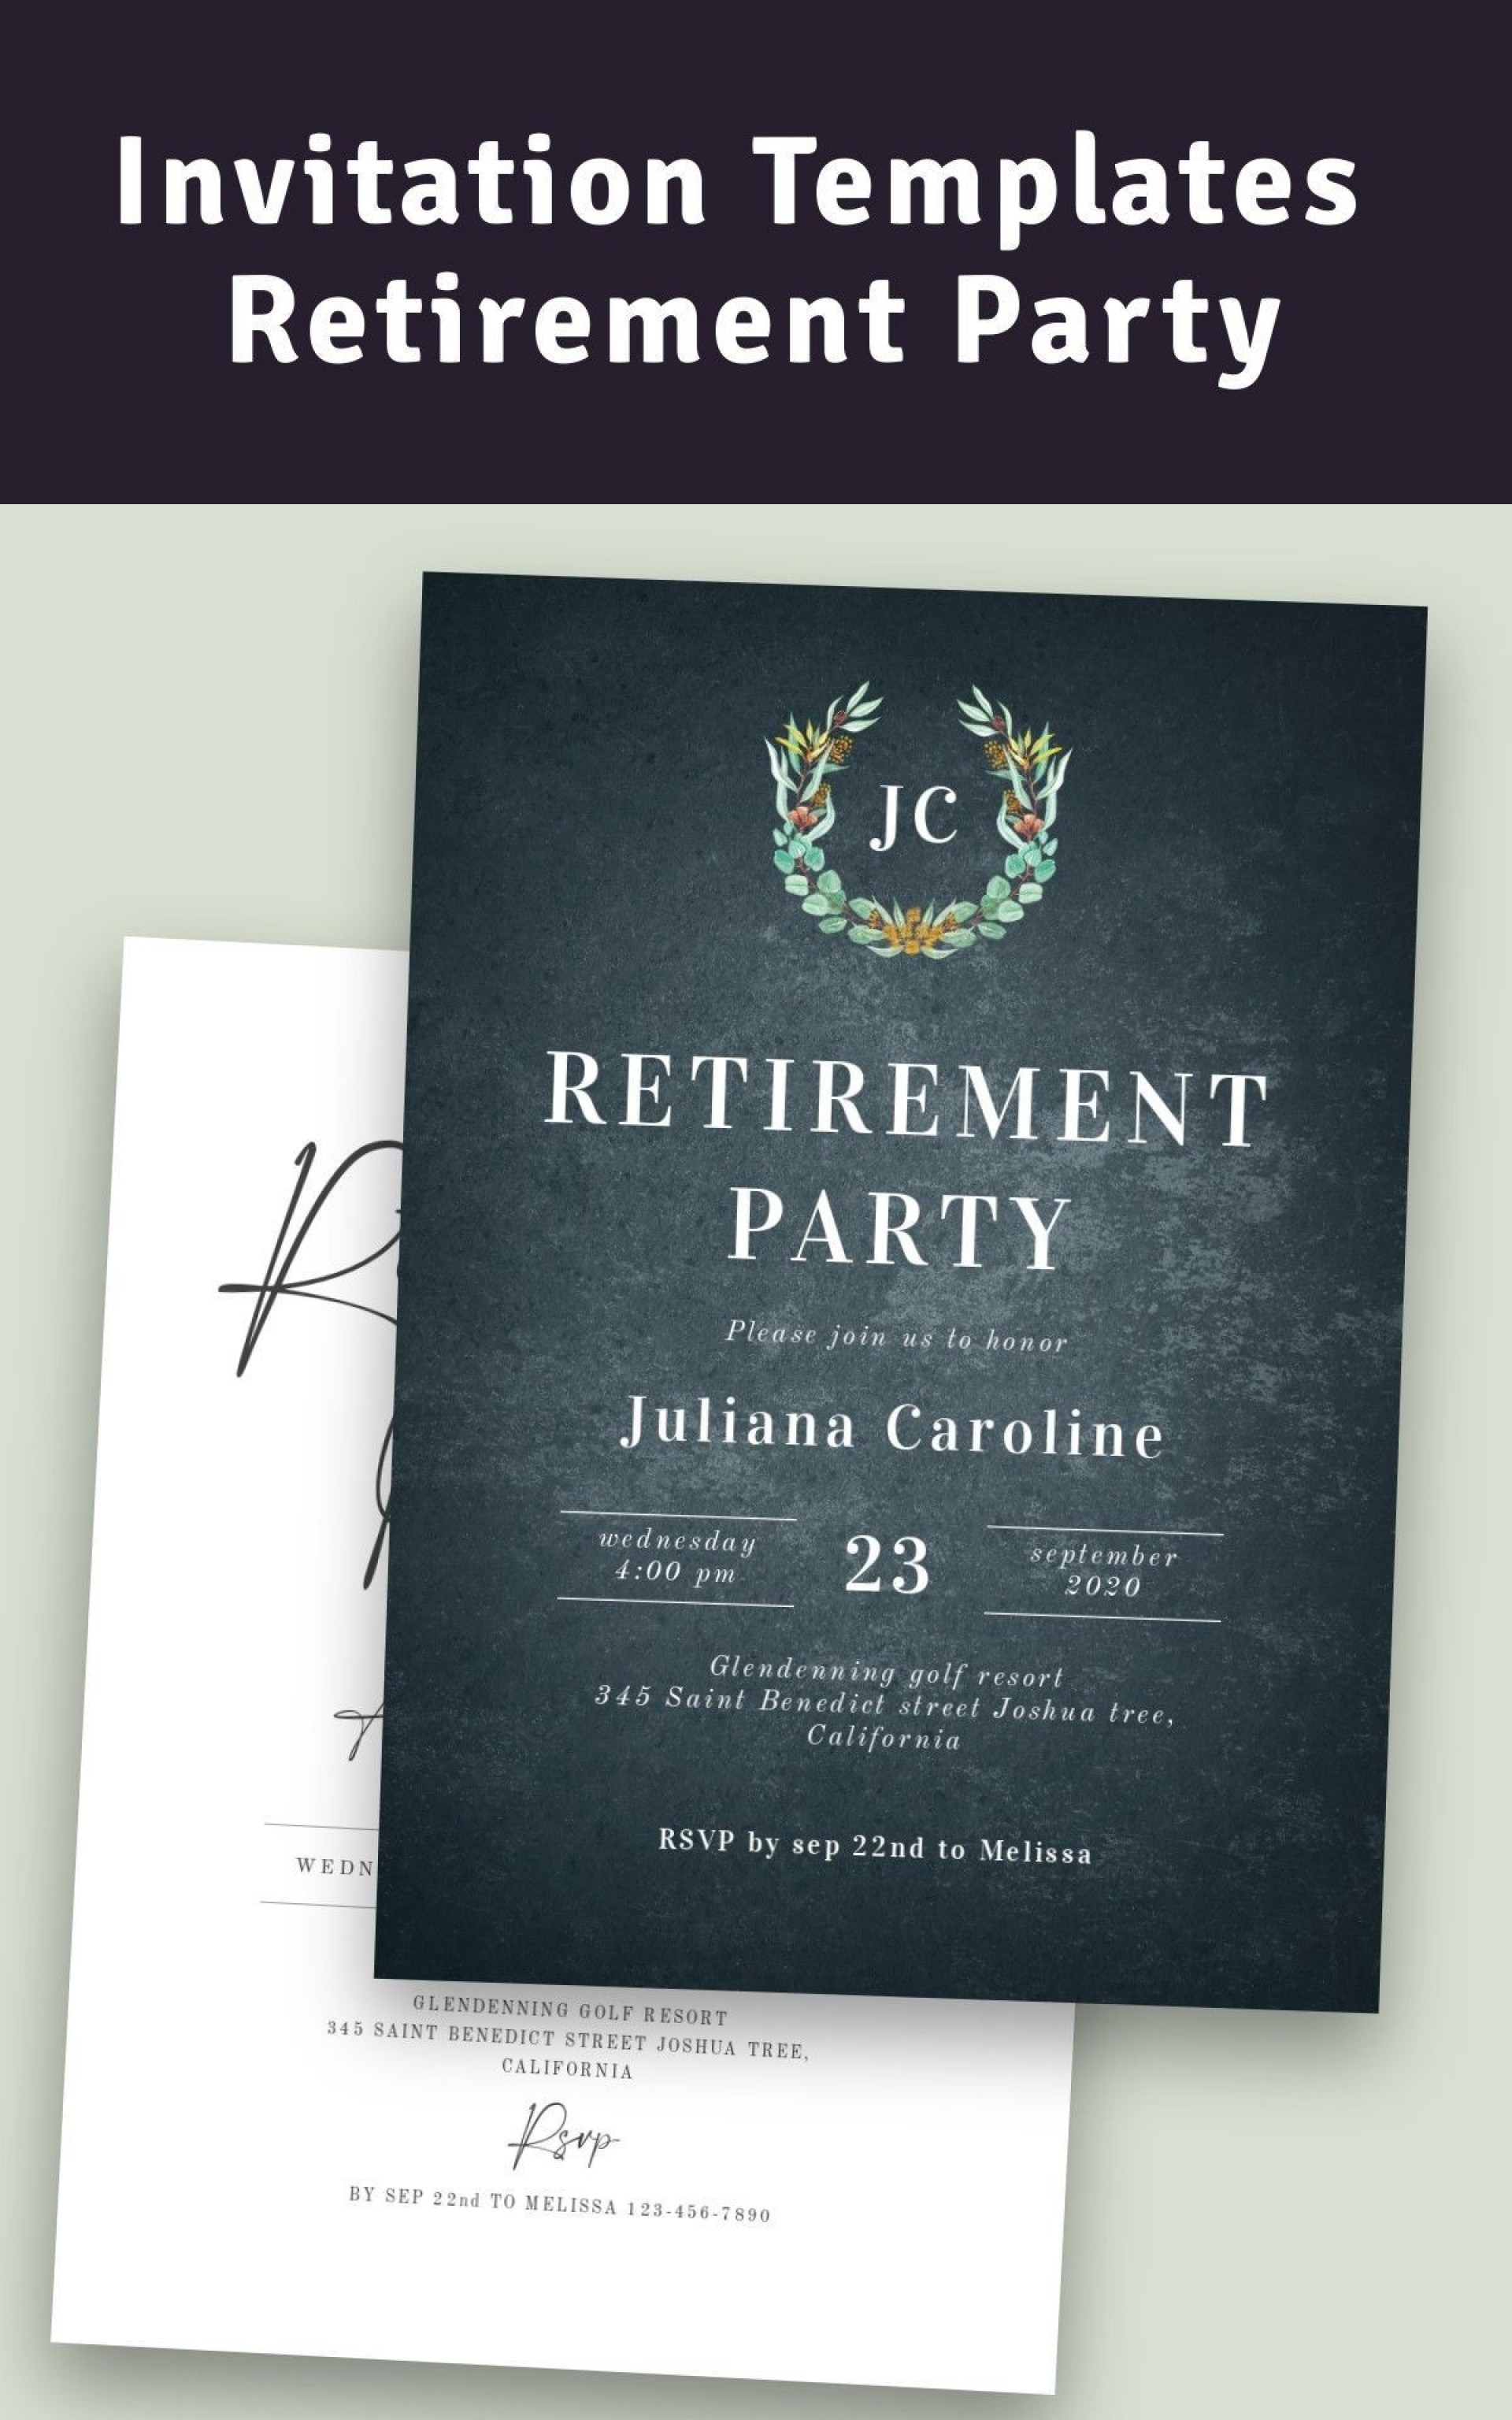 007 Sensational Retirement Party Invitation Template Free Picture  M Word1920